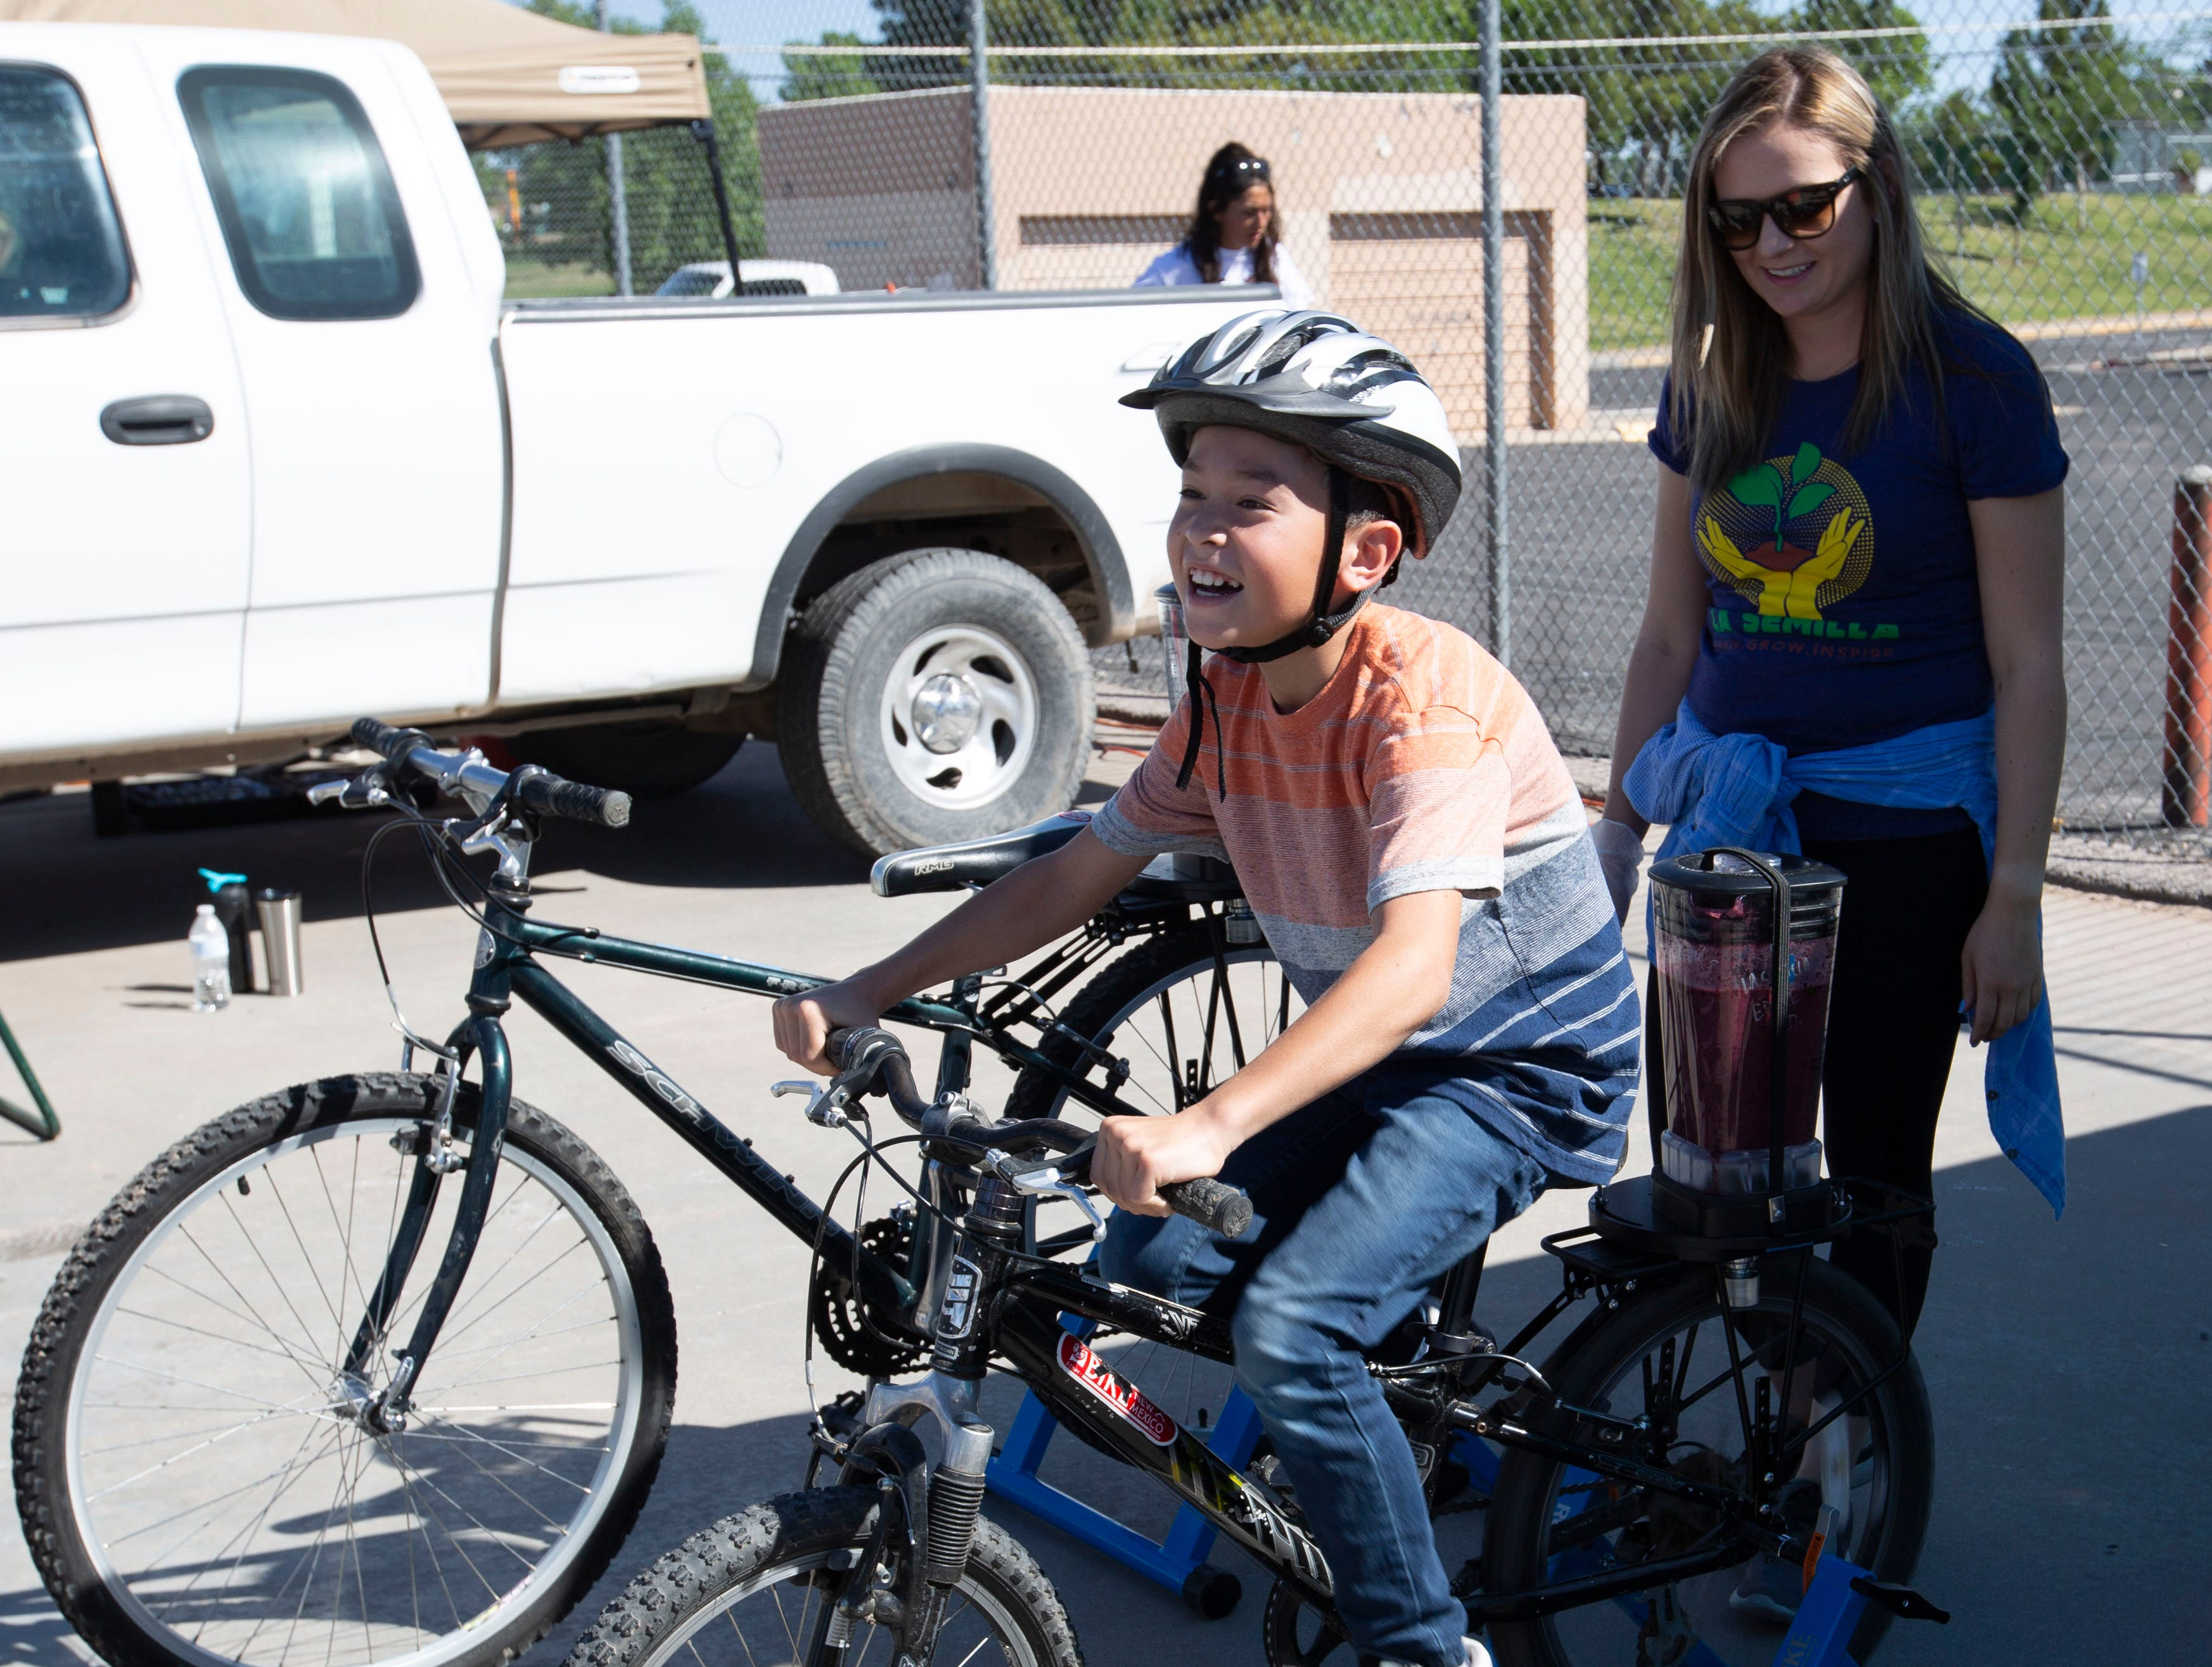 Waylon Yerxa, 10, spins as fast as he can to keep a blender full of smoothie goodness mixing on Saturday, April 27, 2019, at the Family Bike Fiesta.